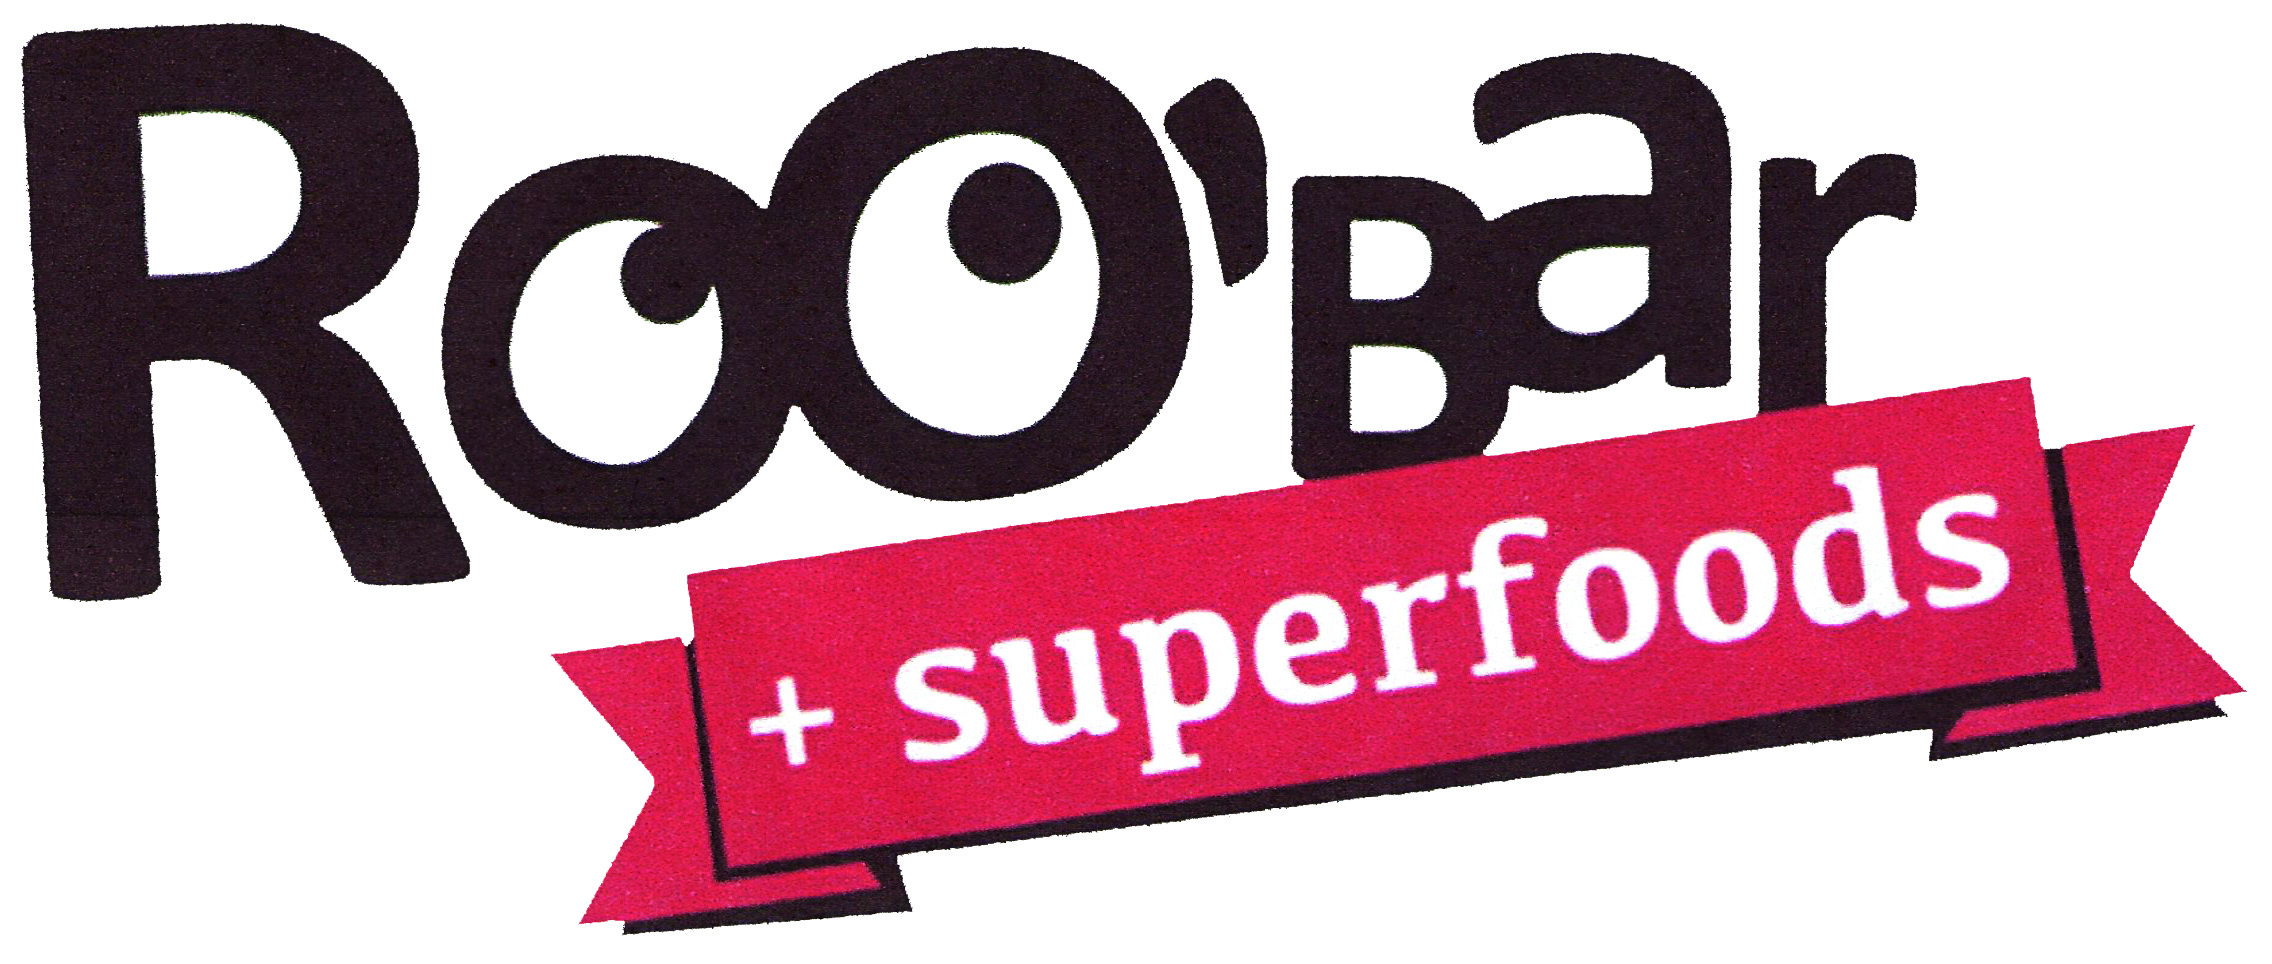 ROOBAR, EUROPE'S #1 BEST-SELLING ORGANIC HEALTH BAR MAKES U.S. DEBUT  – Organic, raw vegan superfood bar simple, nutritious and great-tasting